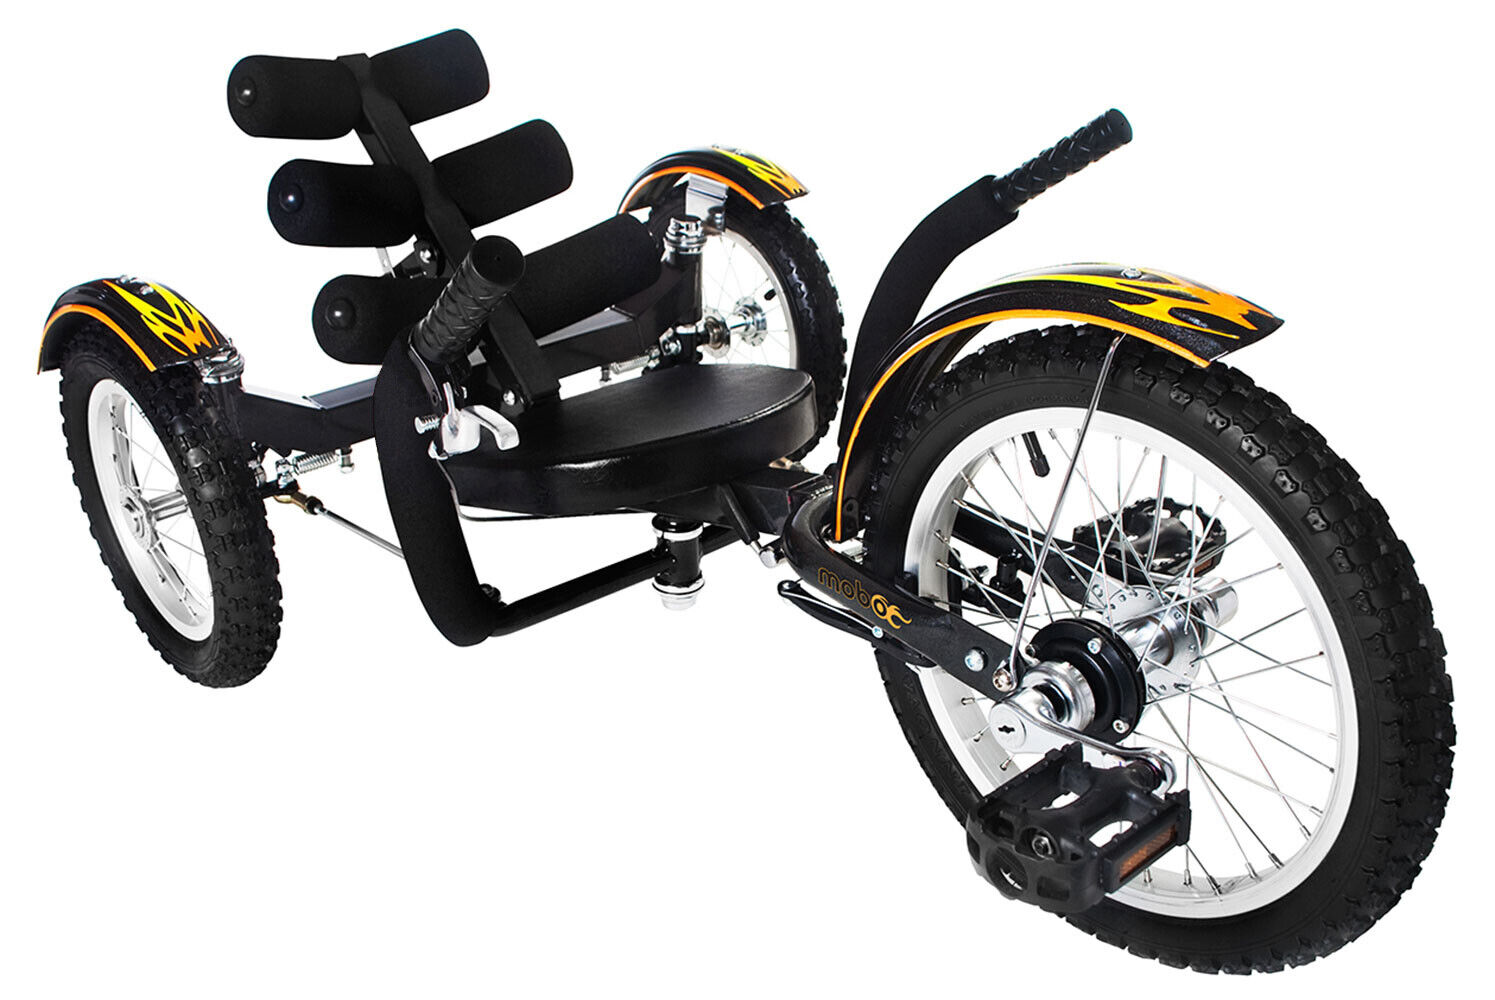 Mobo Mobito: The Ultimate Three Wheeled Cruiser